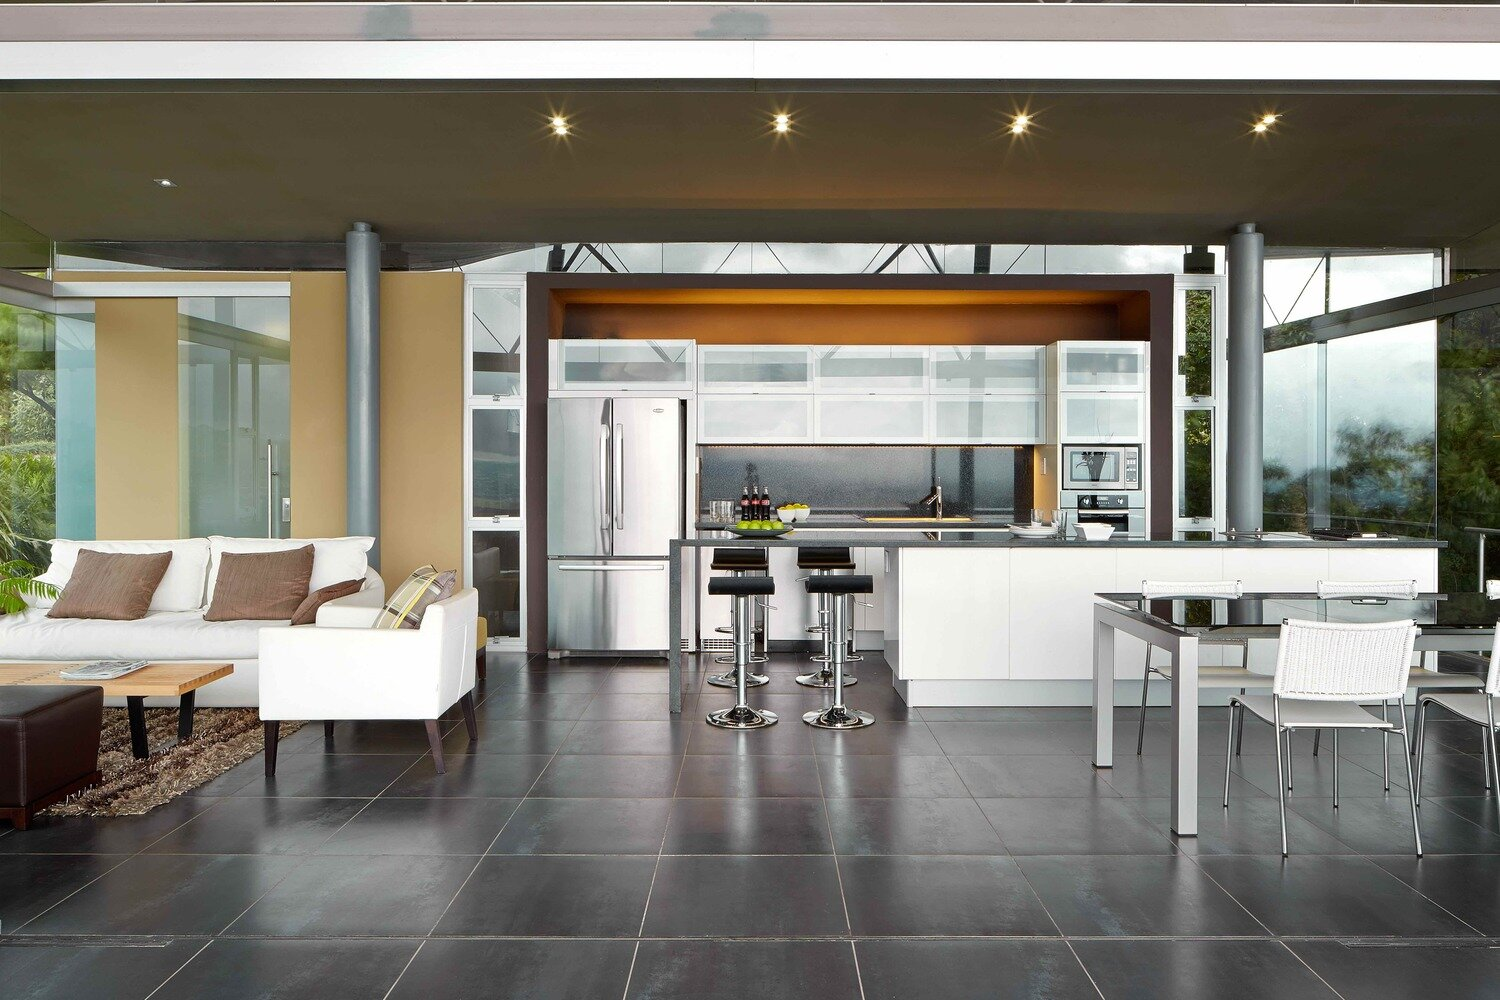 Room-and-Ficus-Cañas-Arquitectos-Costa-Rica-Kitchen-Humble-Homes